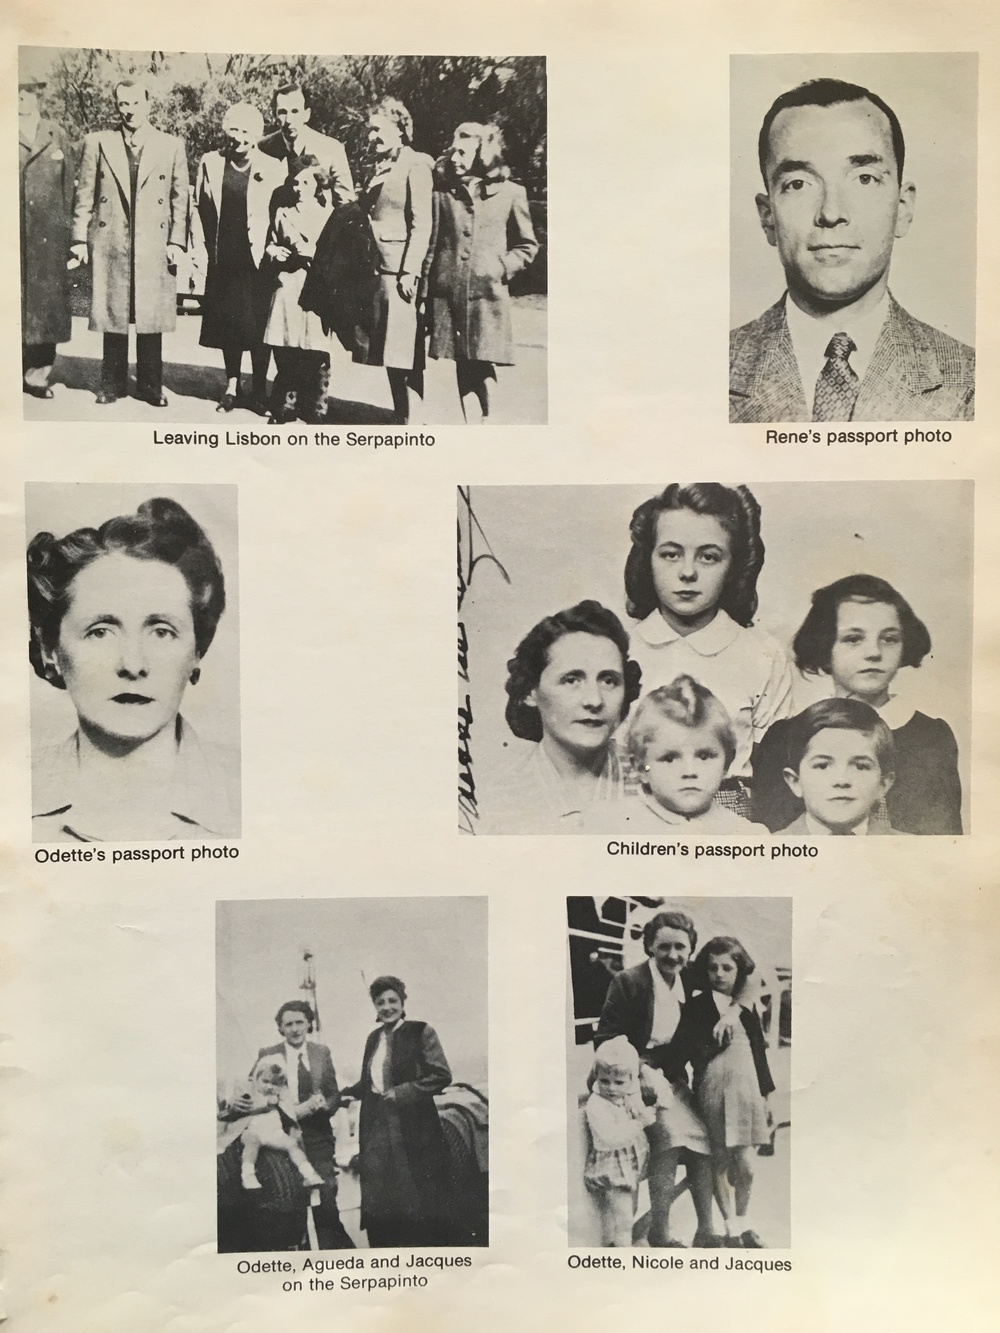 Photos of my grandfather's departure from Europe. He's the dapper little boy with the comb-over in the middle row of photos.